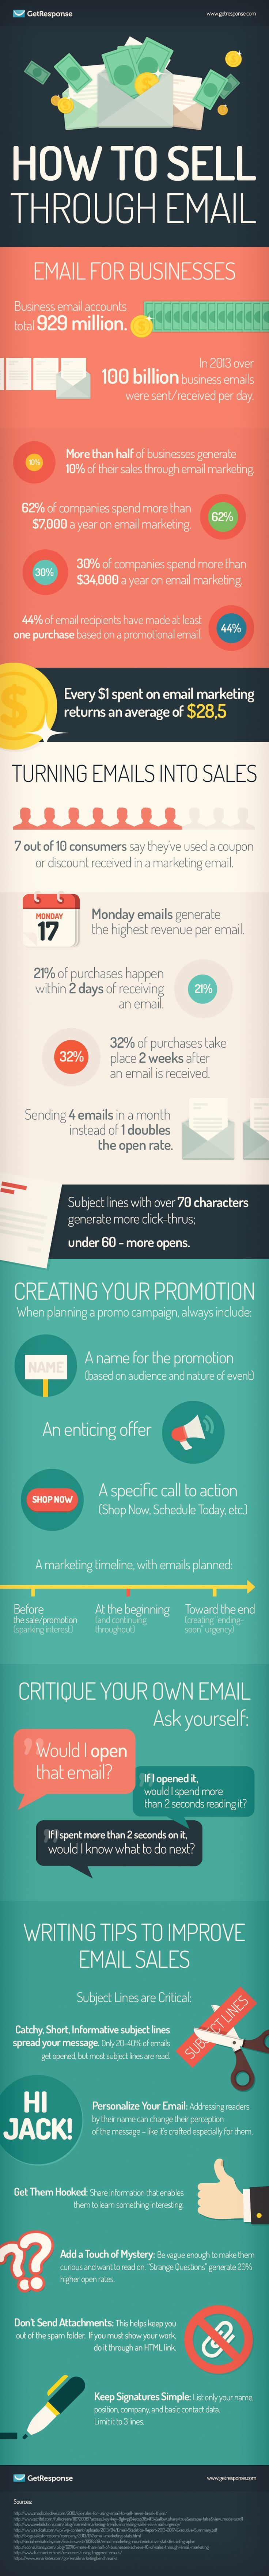 How to Sell Through Email www.socialmediamamma.com Email marketing Infographic #ZooSeo